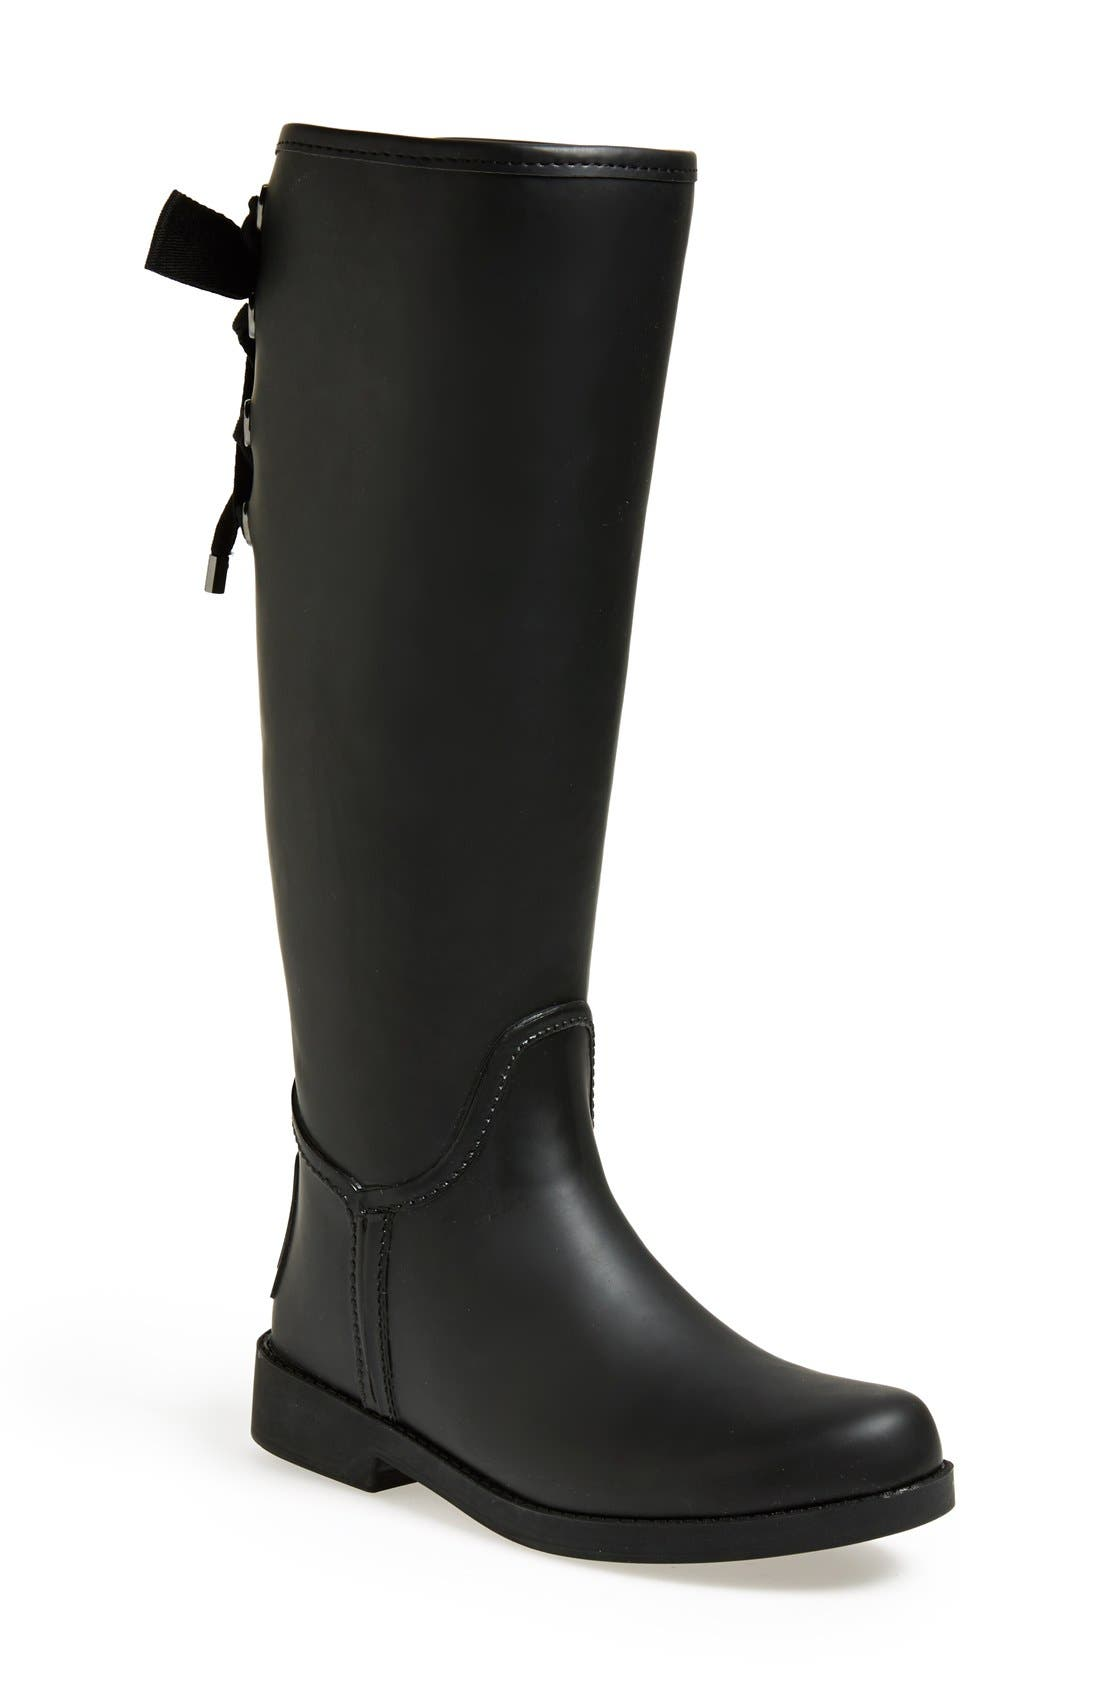 Alternate Image 1 Selected - COACH 'Tristee' Waterproof Rain Boot